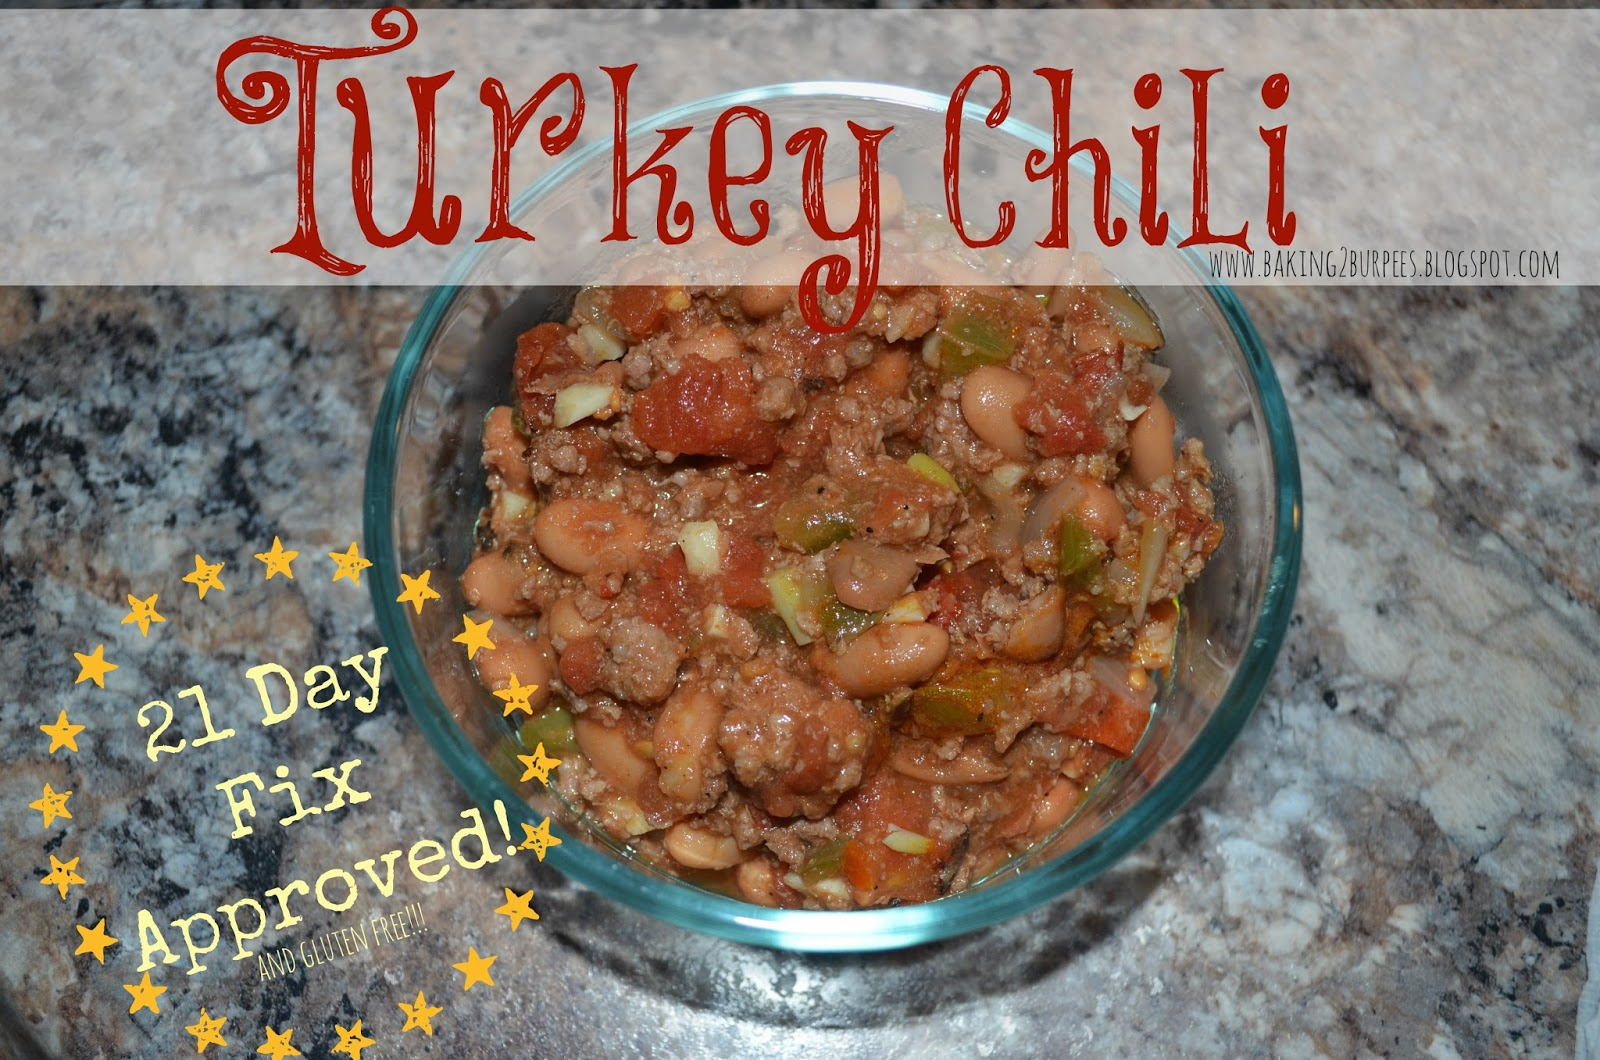 ErinTraill, diamond beachbody coach, turkey chili, healthy recipe, 21 day fix approved, 21 day fix extreme approved recipe, fit momma, gluten free recipe,